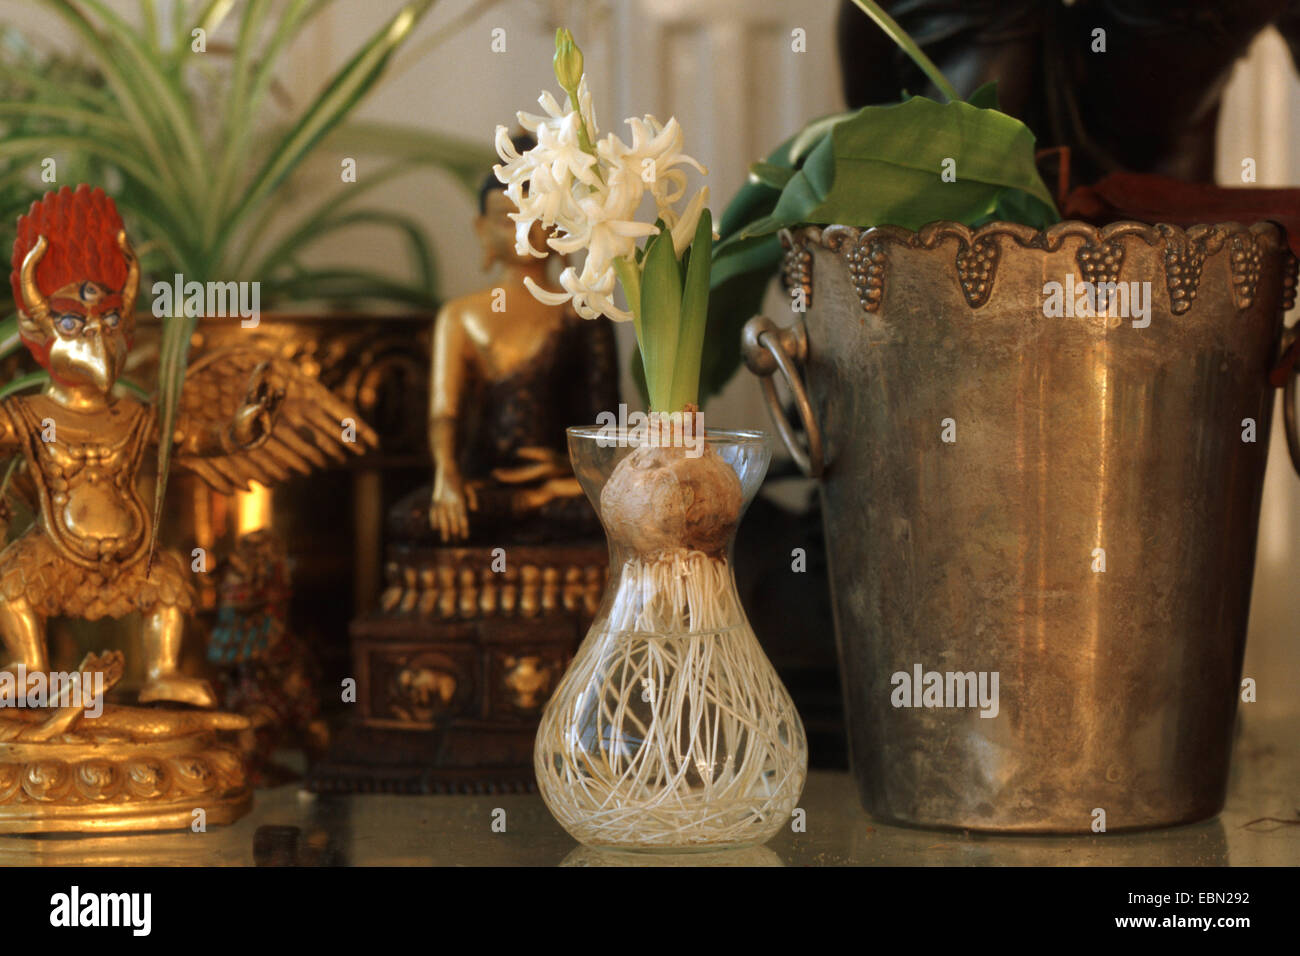 Jacinthe (Hyacinthus orientalis), in a glass Stock Photo